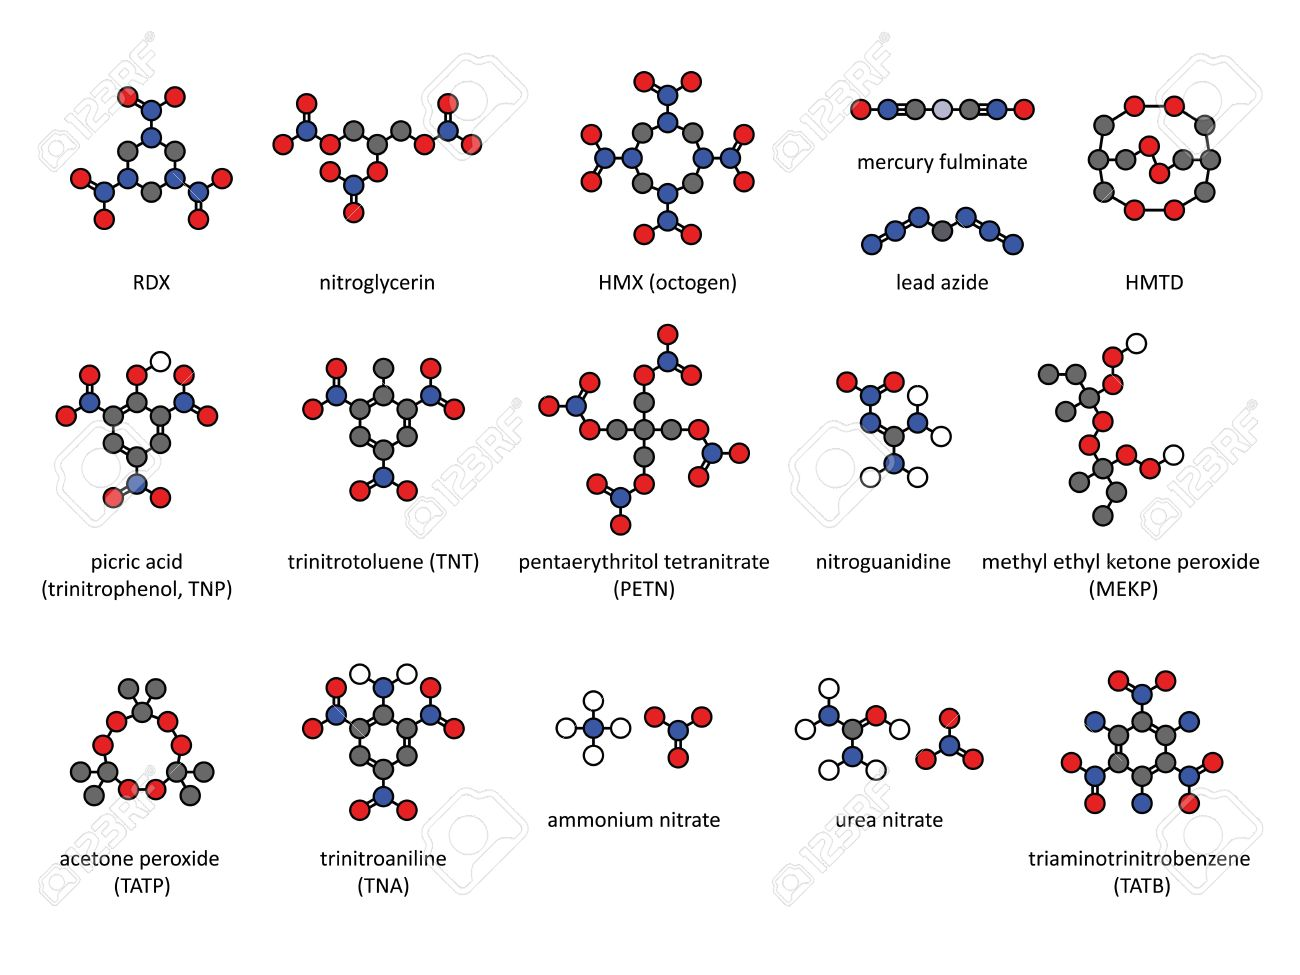 Explosive compounds, 2D chemical structures (set). Atoms are represented as conventionally color-coded circles. Included are nitroglycerin, RDX, HMX, TATB, MEKP, TNT, PETN, ammonium nitrate, nitroguanidine, mercury fulminate, lead azide, acetone peroxide Stock Vector - 19288633